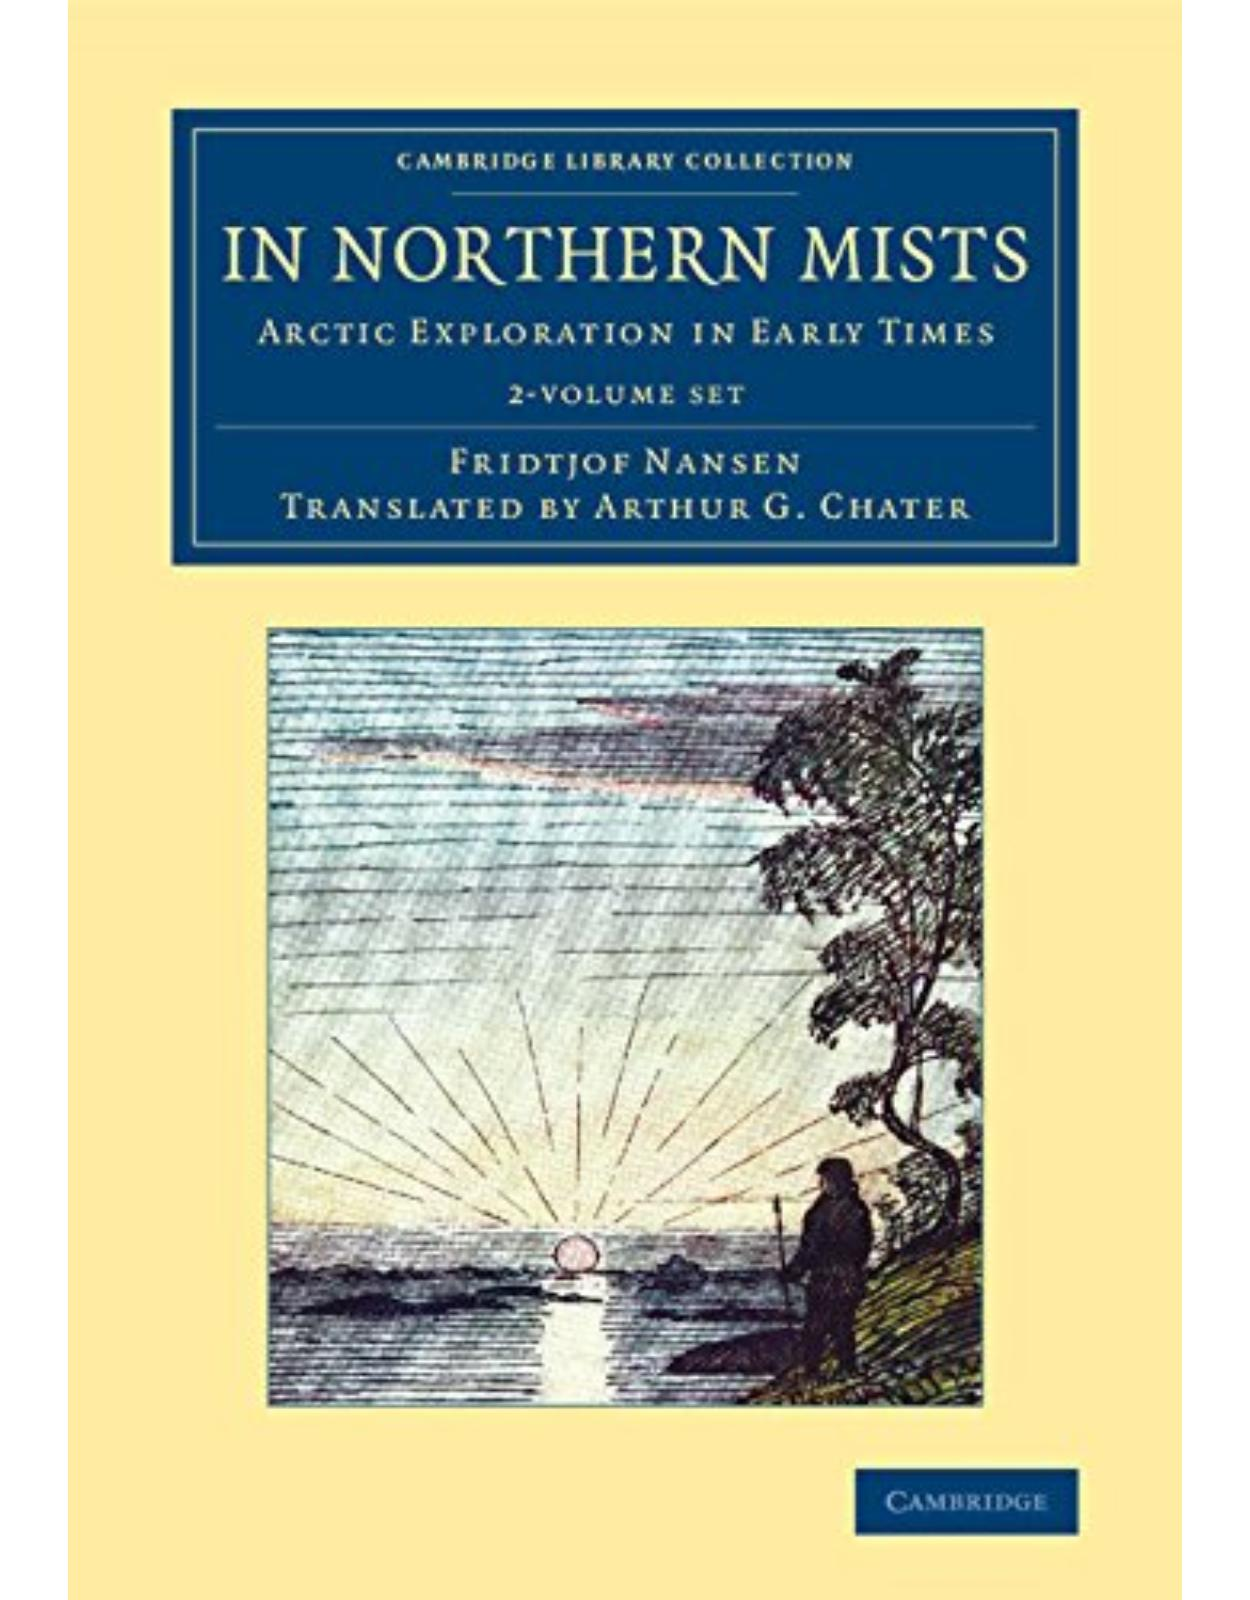 In Northern Mists 2 Volume Set: Arctic Exploration in Early Times (Cambridge Library Collection - Polar Exploration)